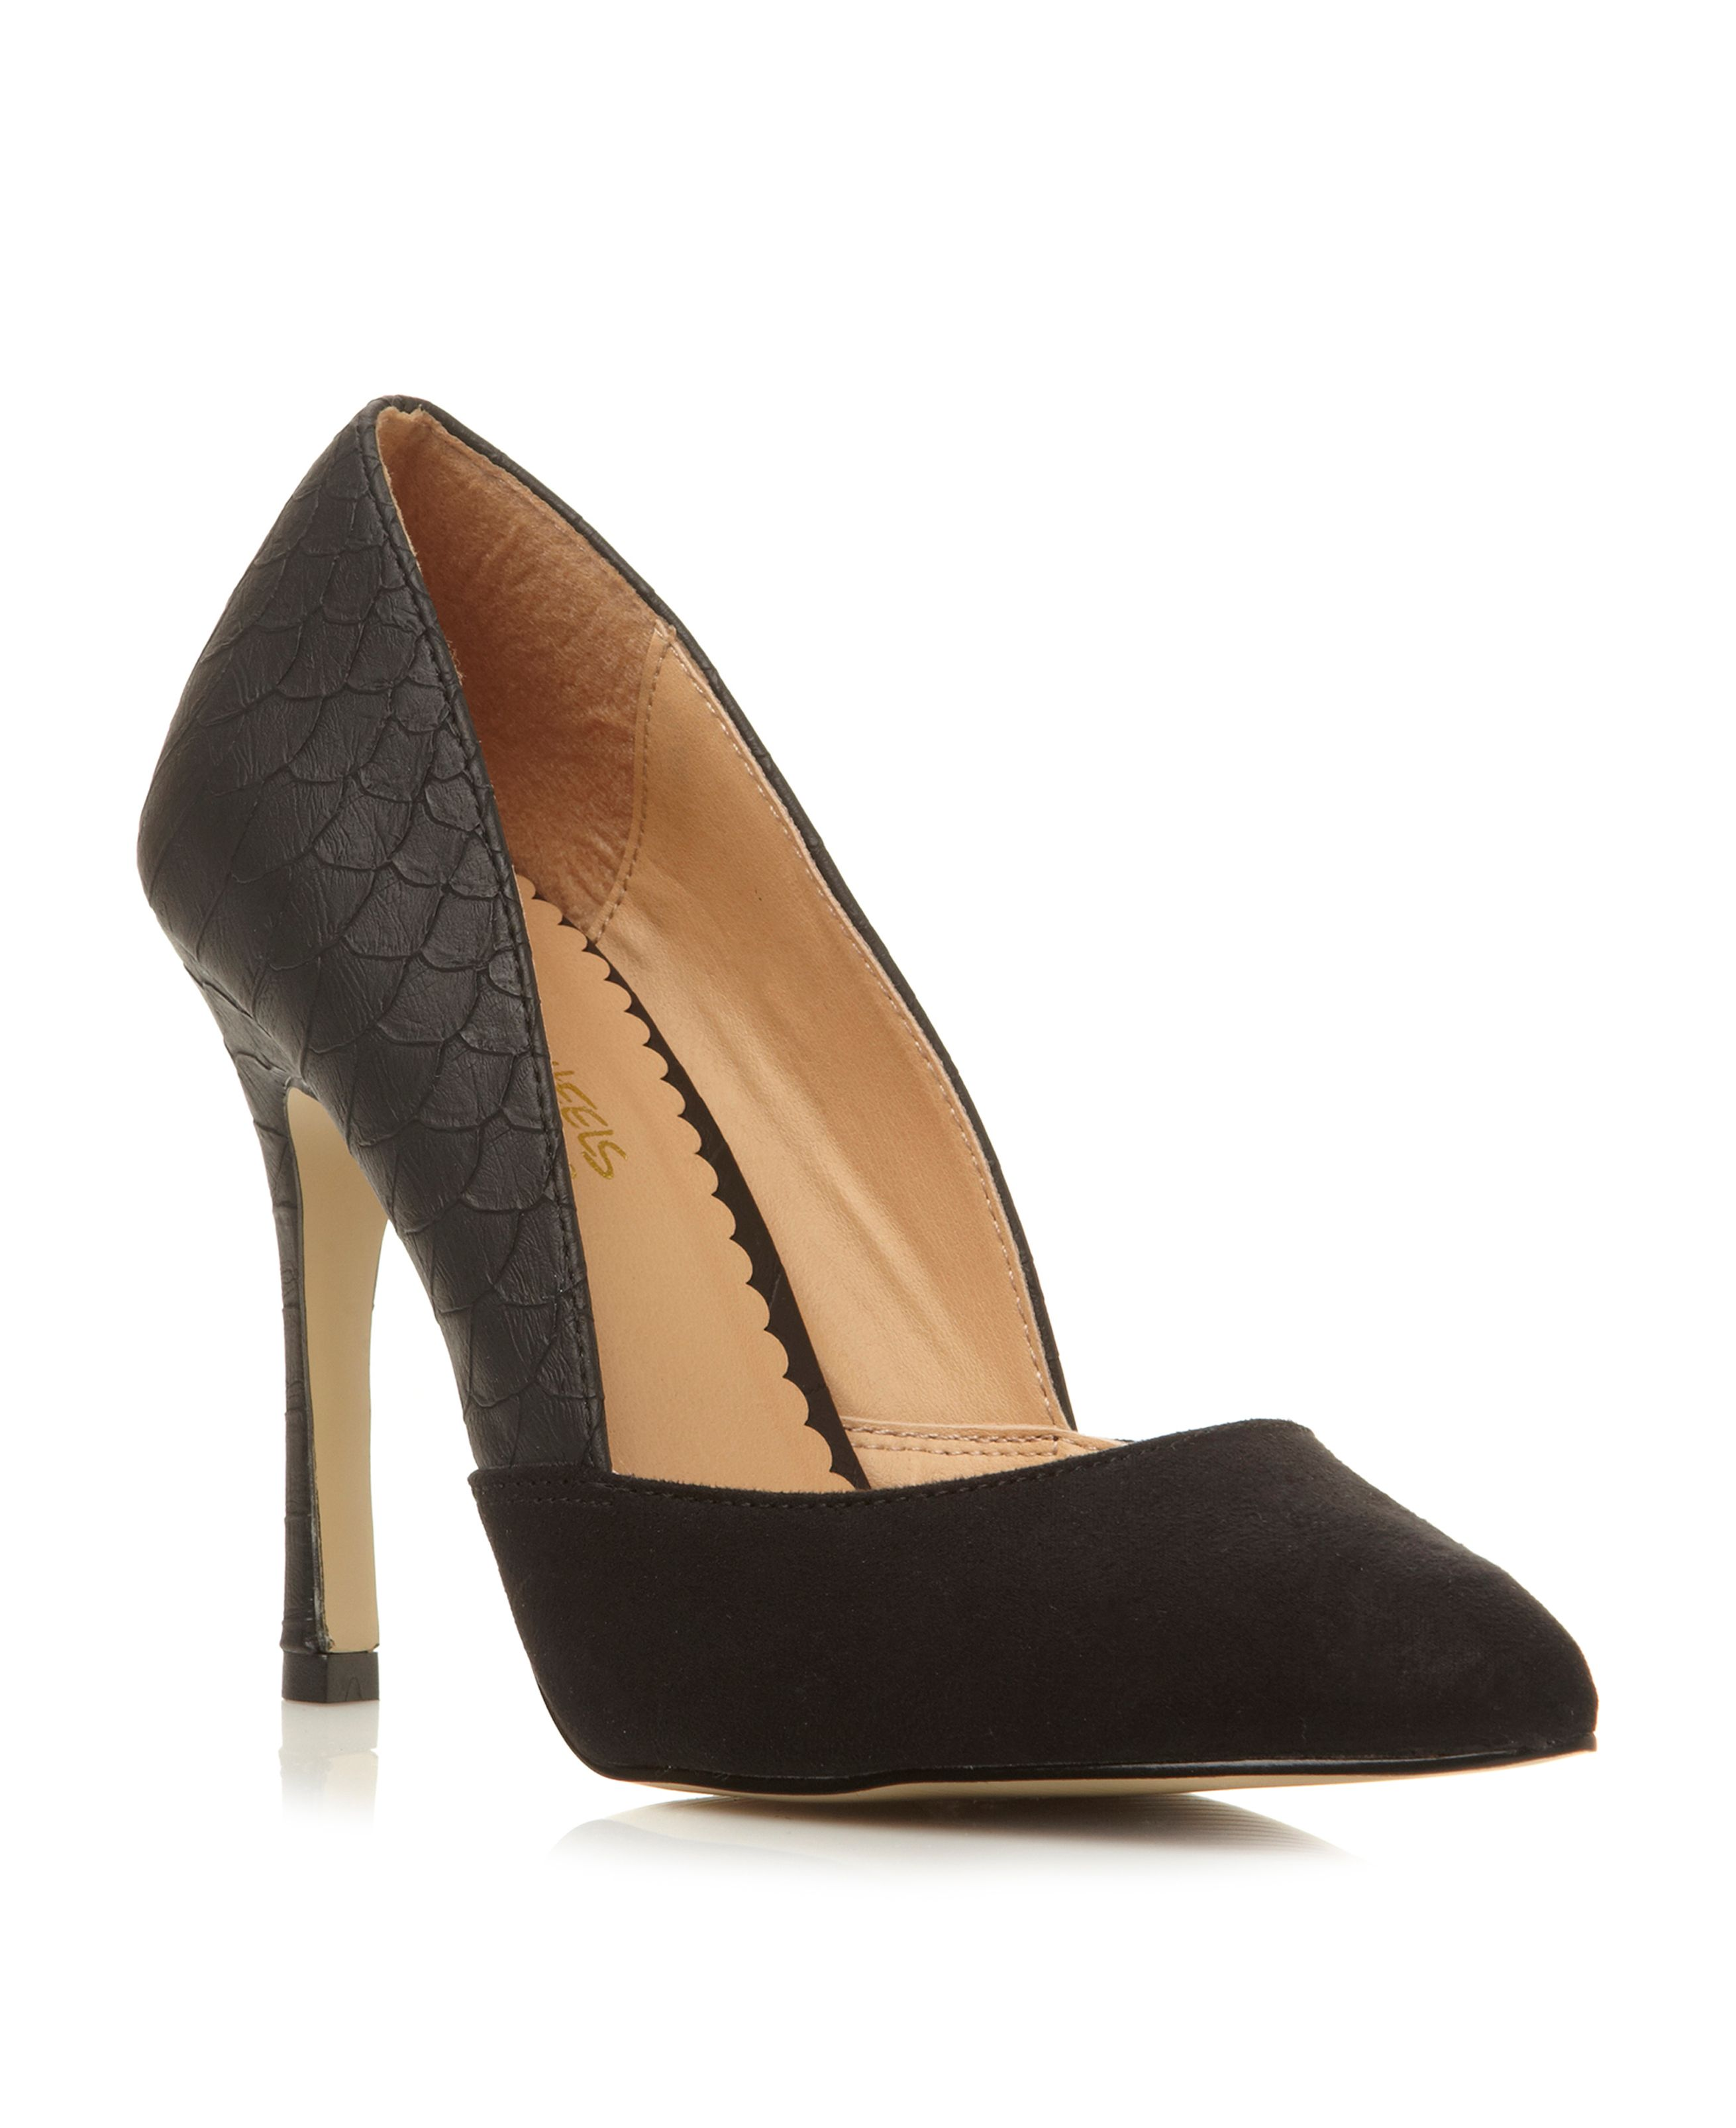 Boden pointed toe stiletto court shoes